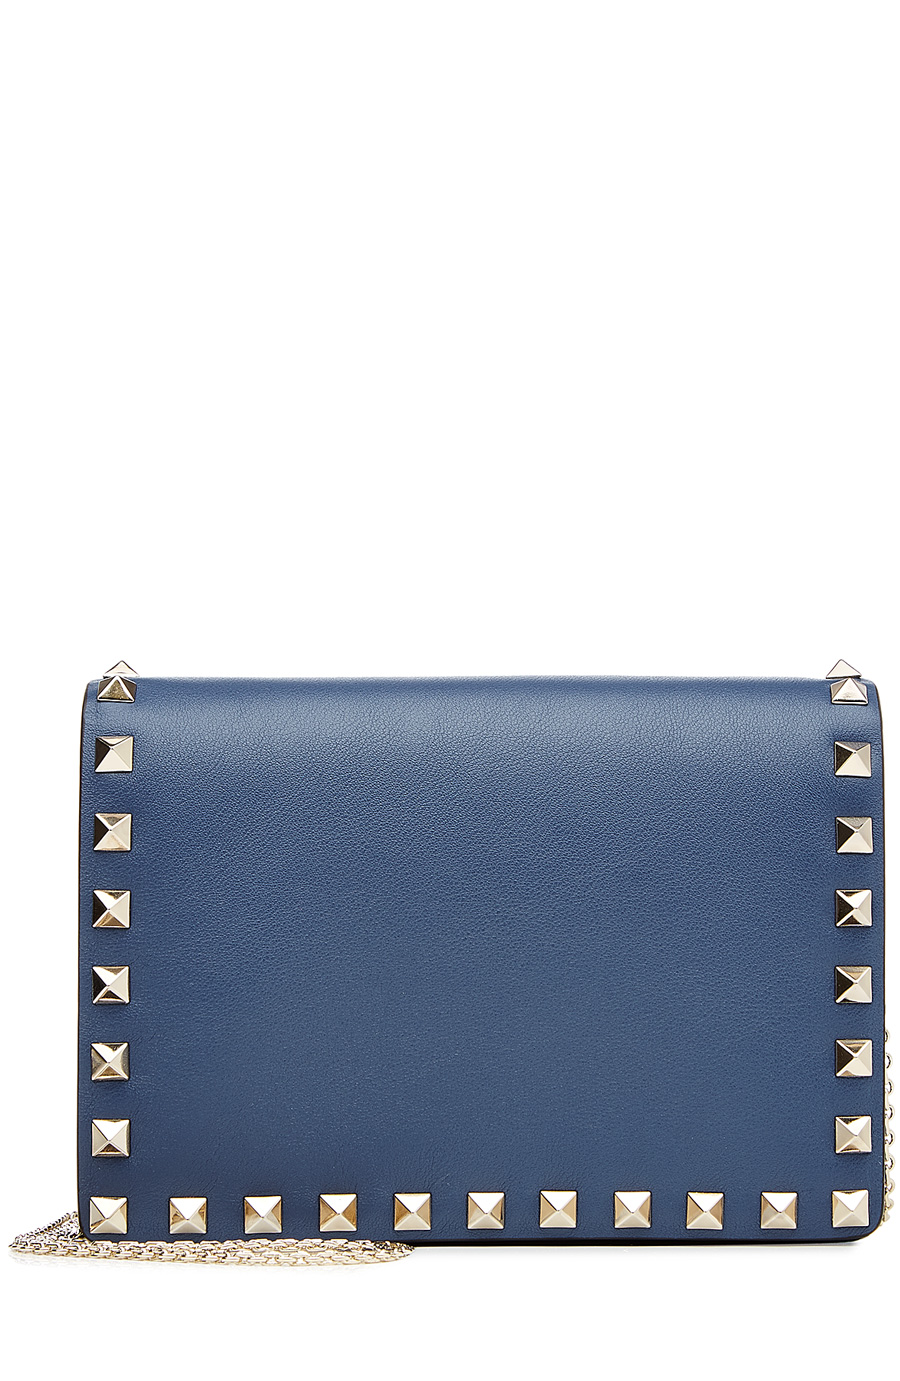 Valentino Rockstud Leather Shoulder Bag In Blue